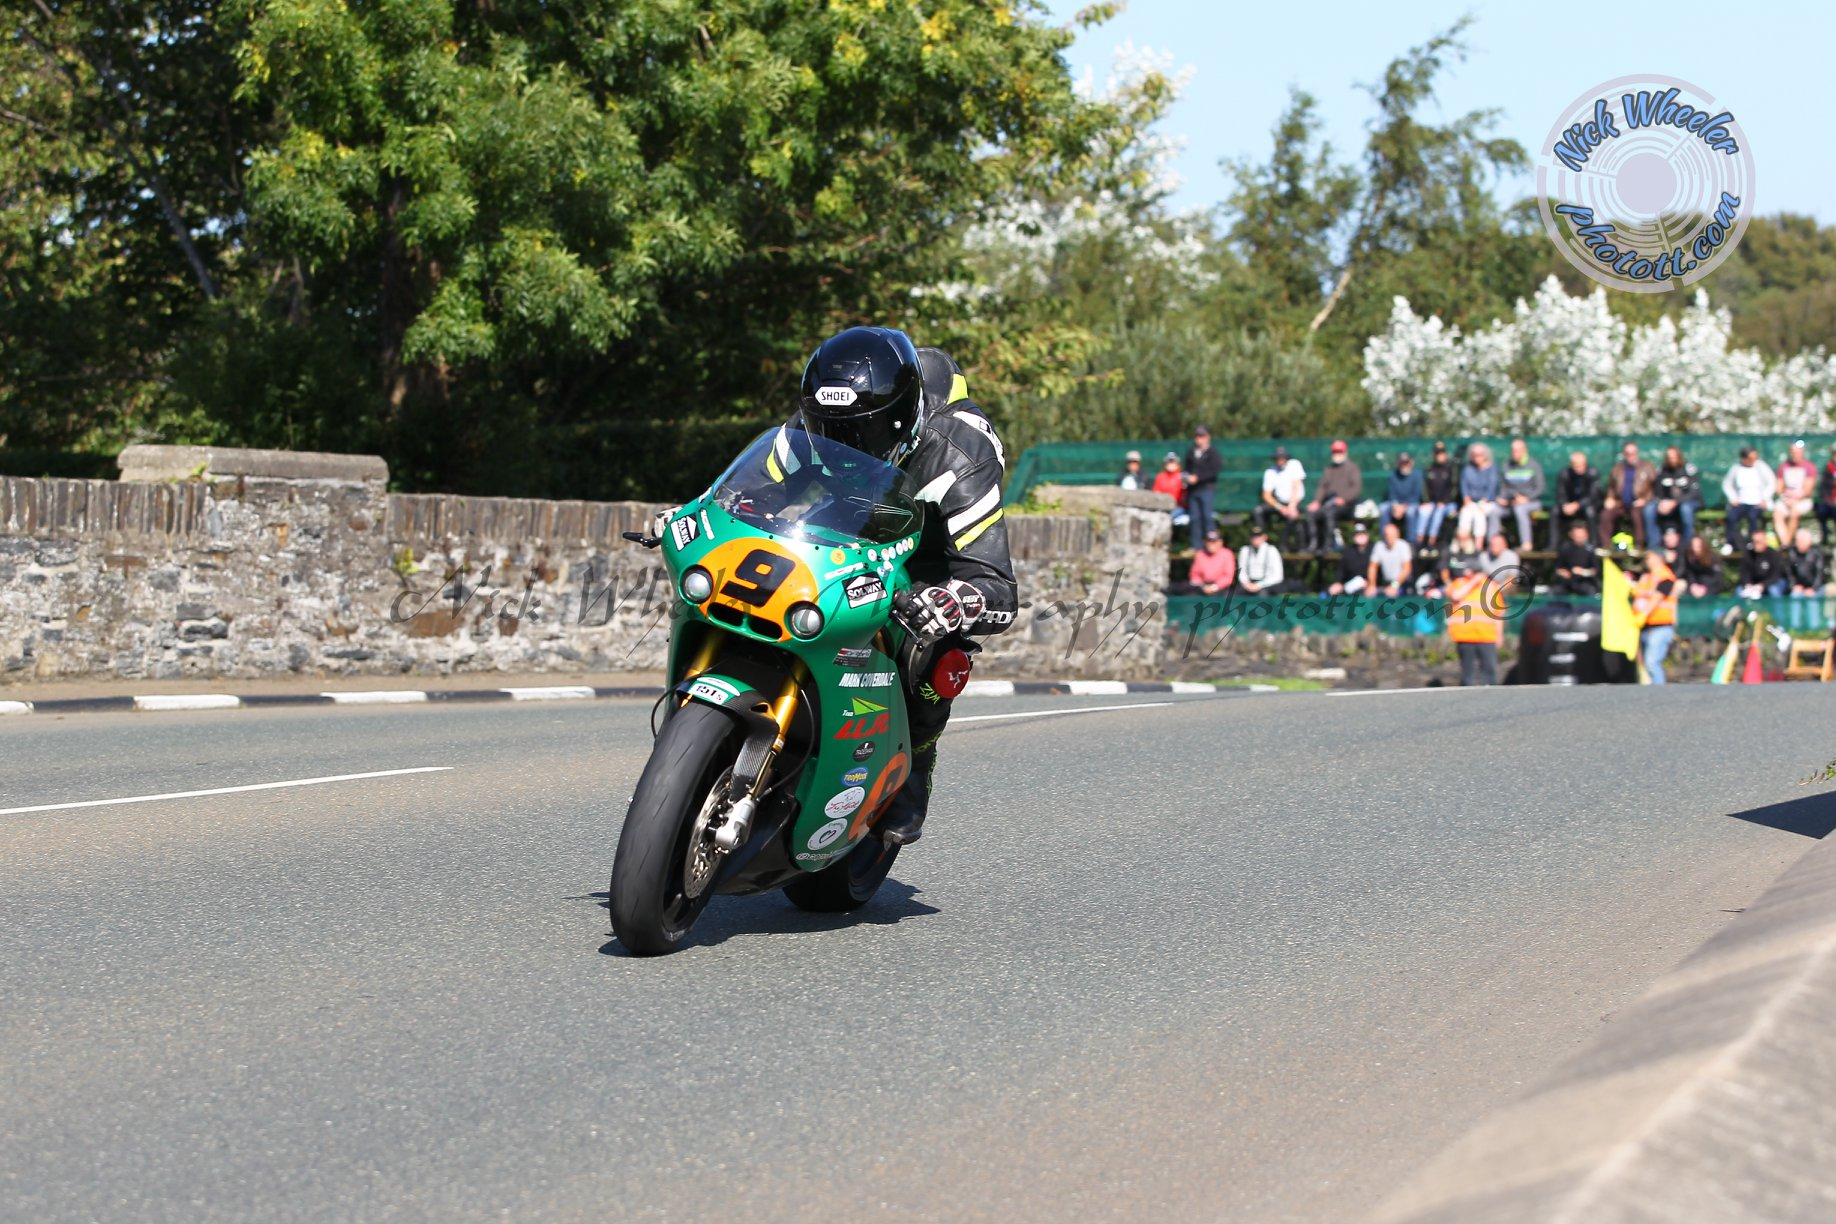 Junior Manx GP Winner Chawke, BSB Points Finisher Phillips Set For NW200 Debuts With Team ILR